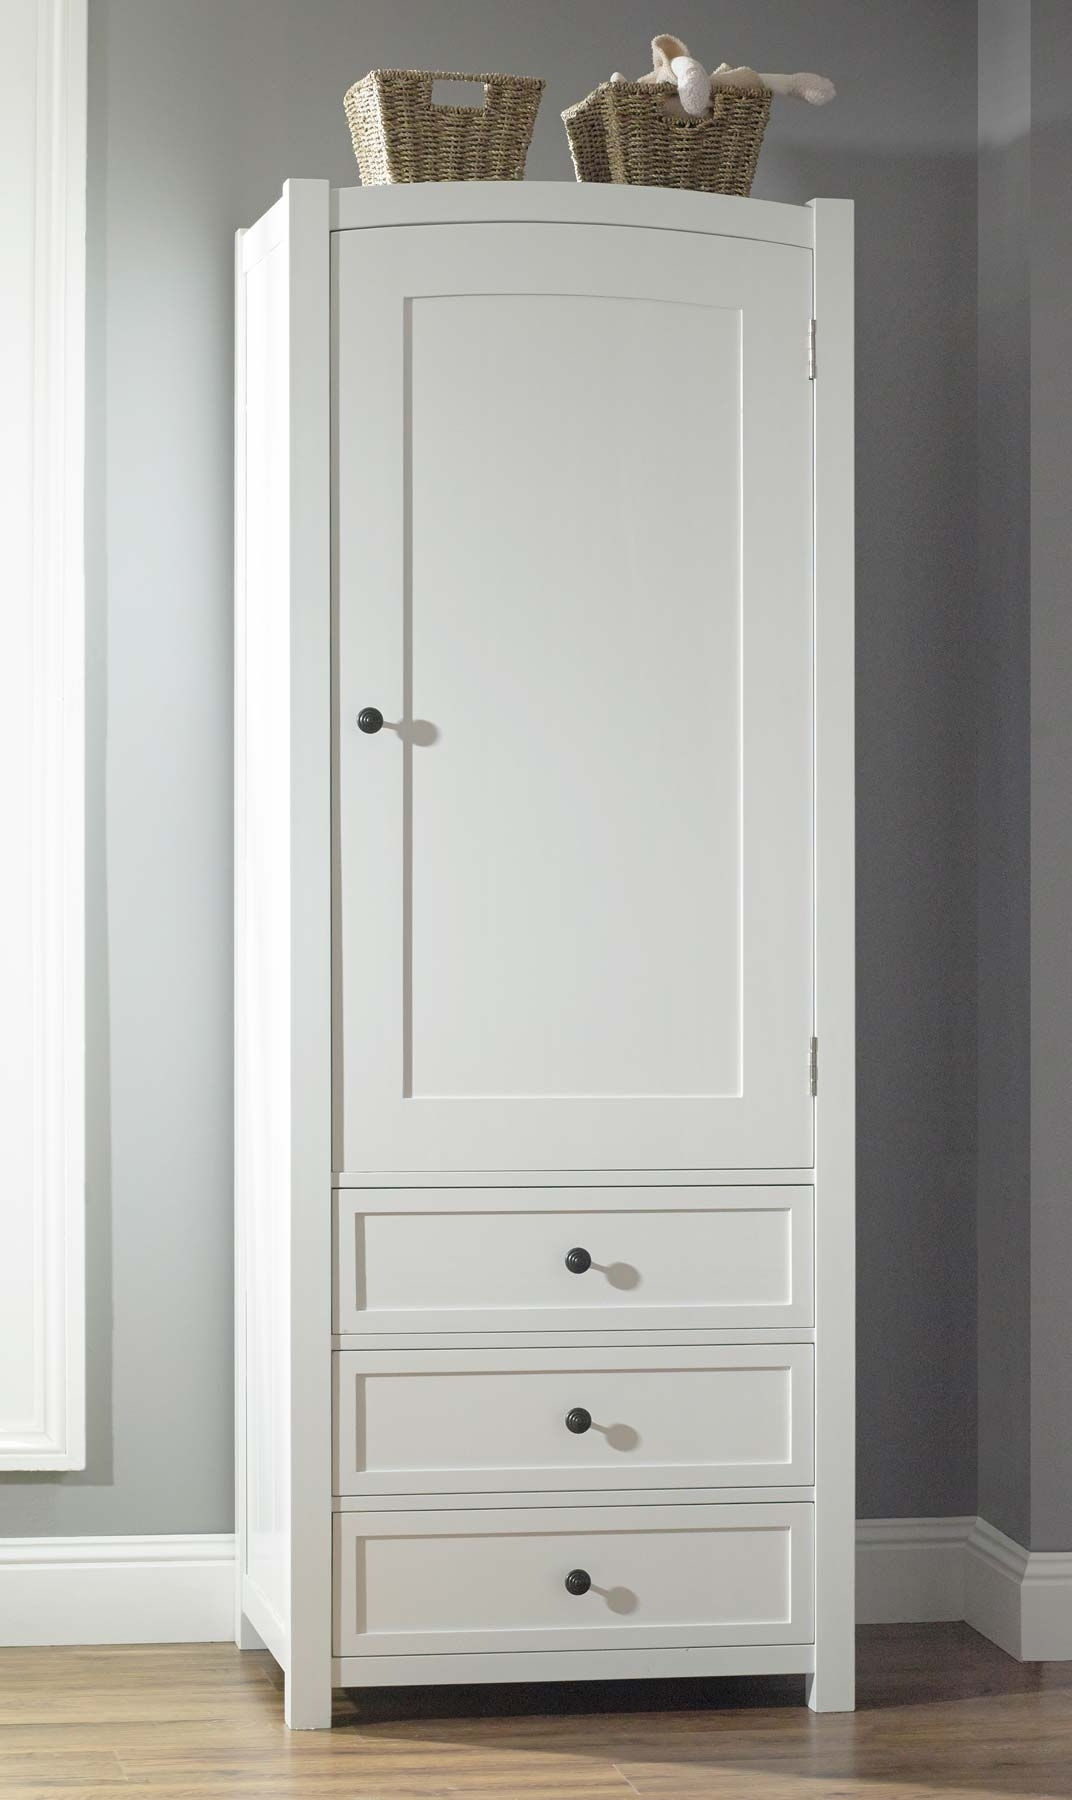 Classic Mirrored White Painted Wooden Wardrobe With Black Knob Regarding Favorite Tall Wardrobes (View 8 of 15)